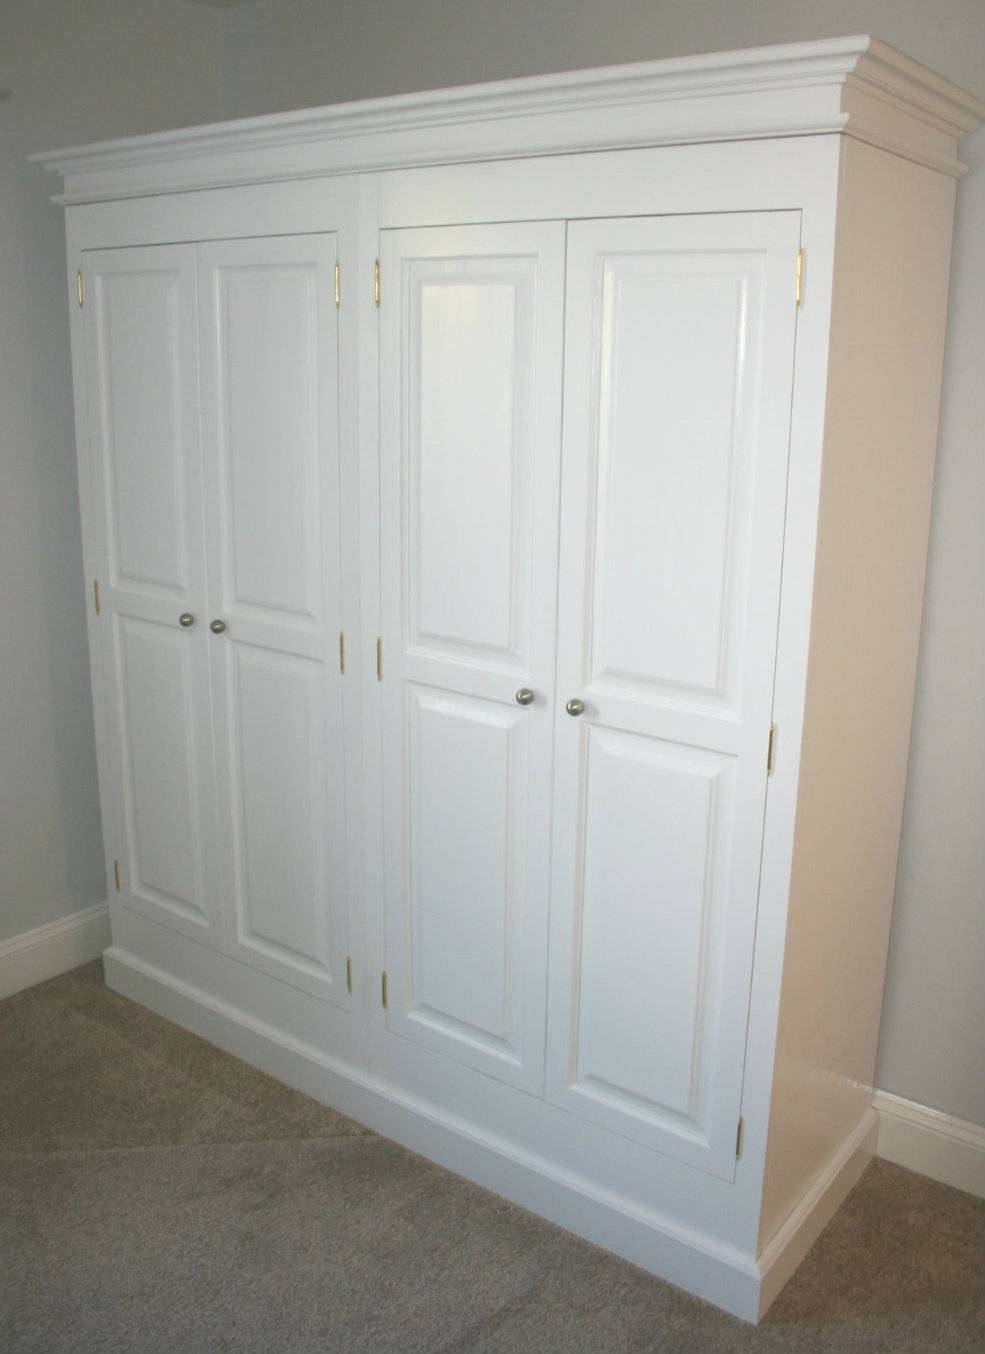 Cap Pine And Oak Furniture Intended For Double Hanging Rail Wardrobes (View 25 of 30)